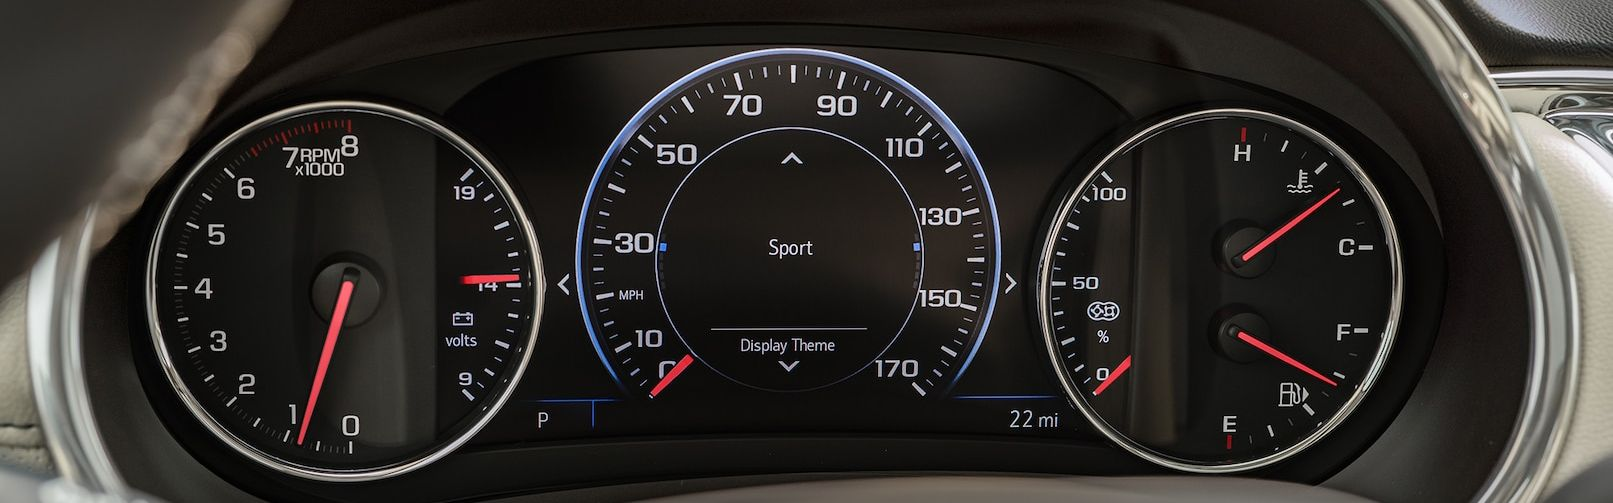 Dashboard of the 2019 Malibu